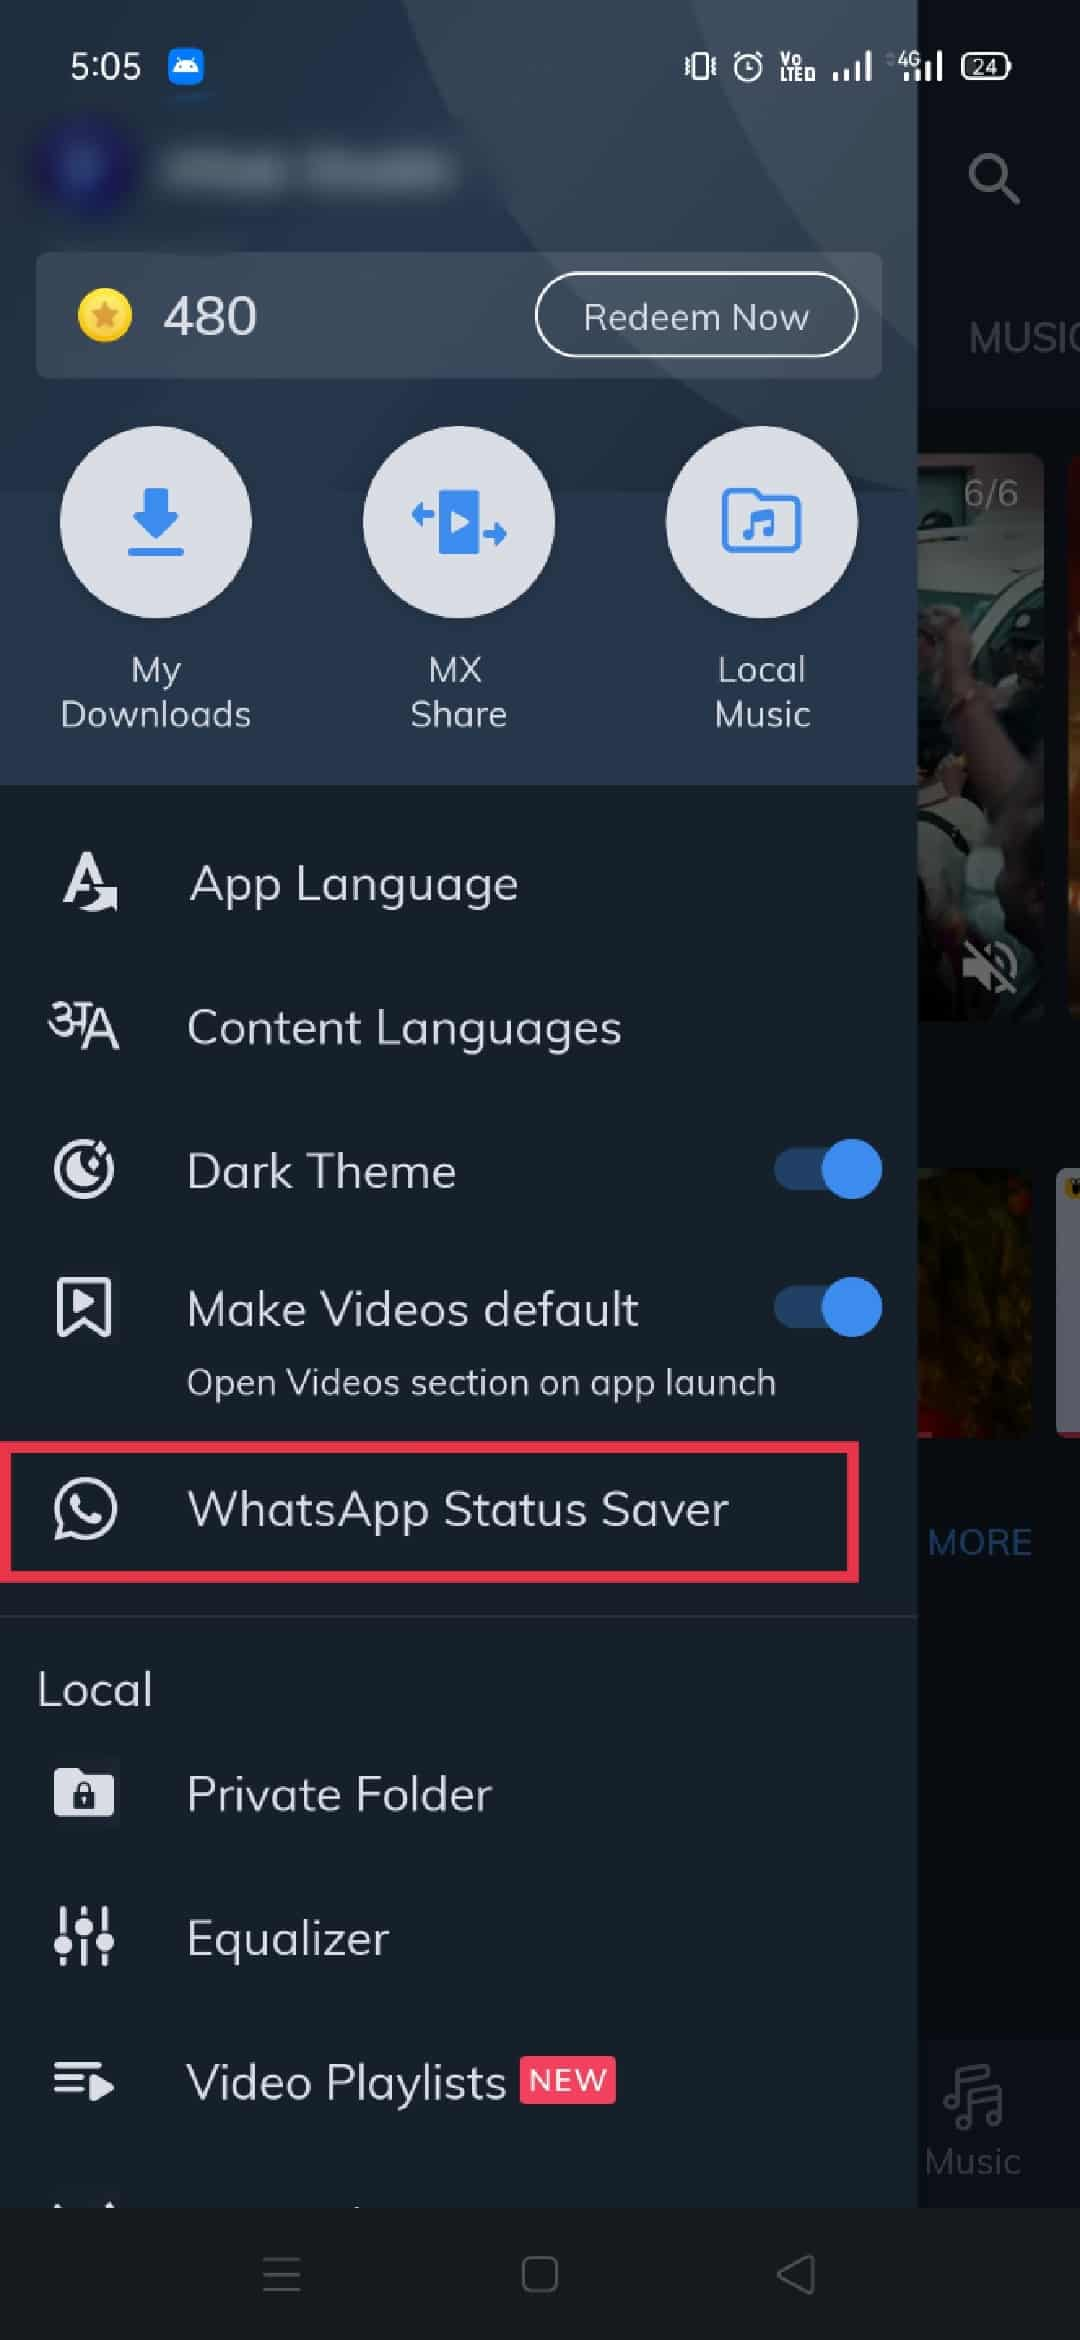 Use Video to player to download status 1